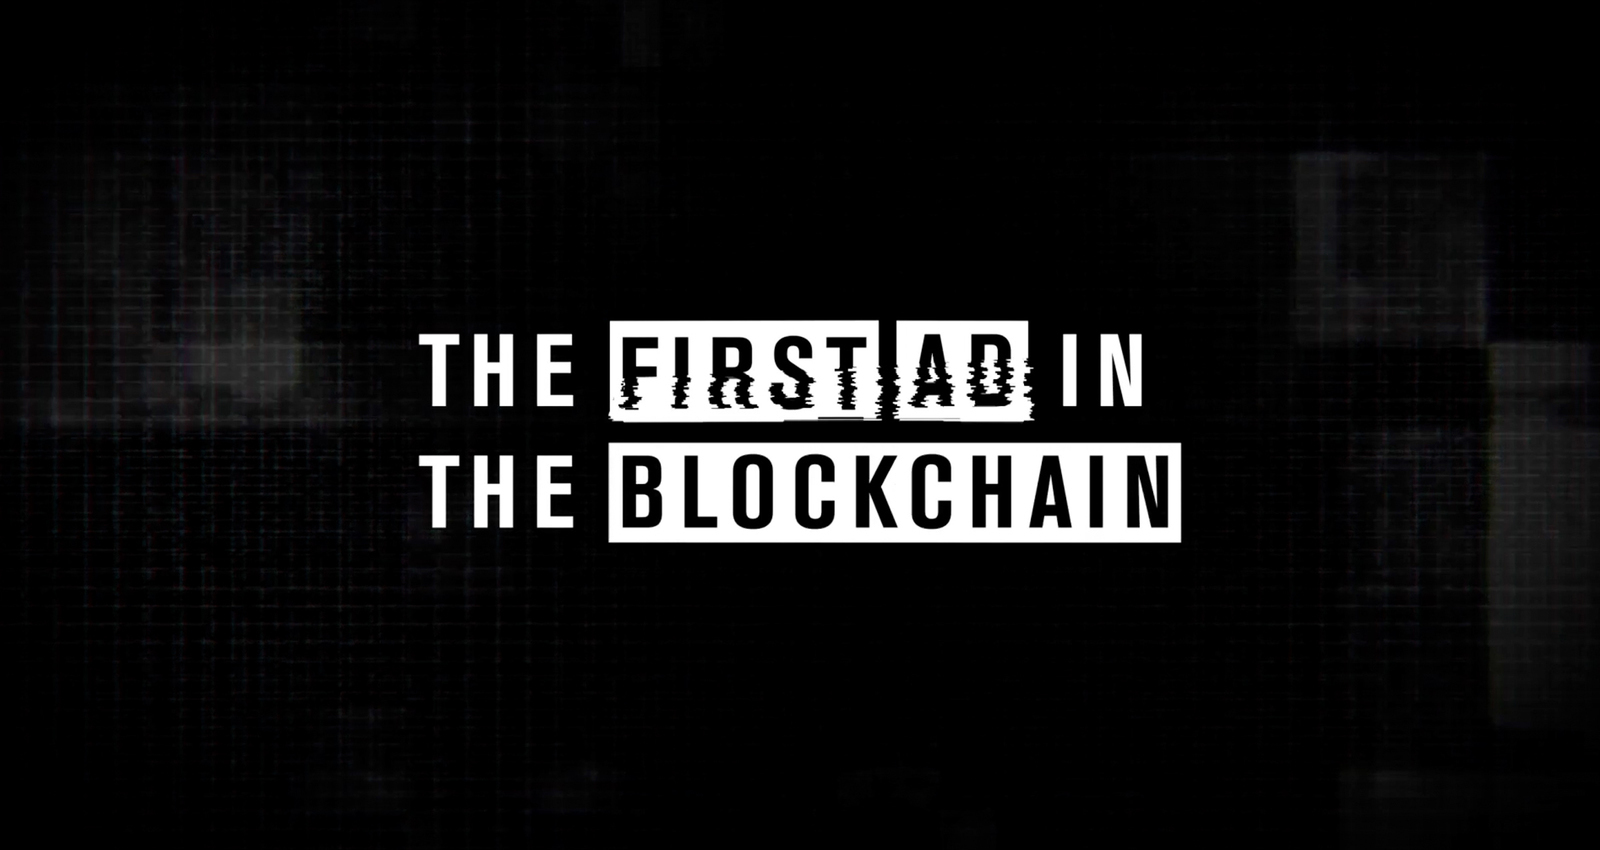 Greetings from the Blockchain